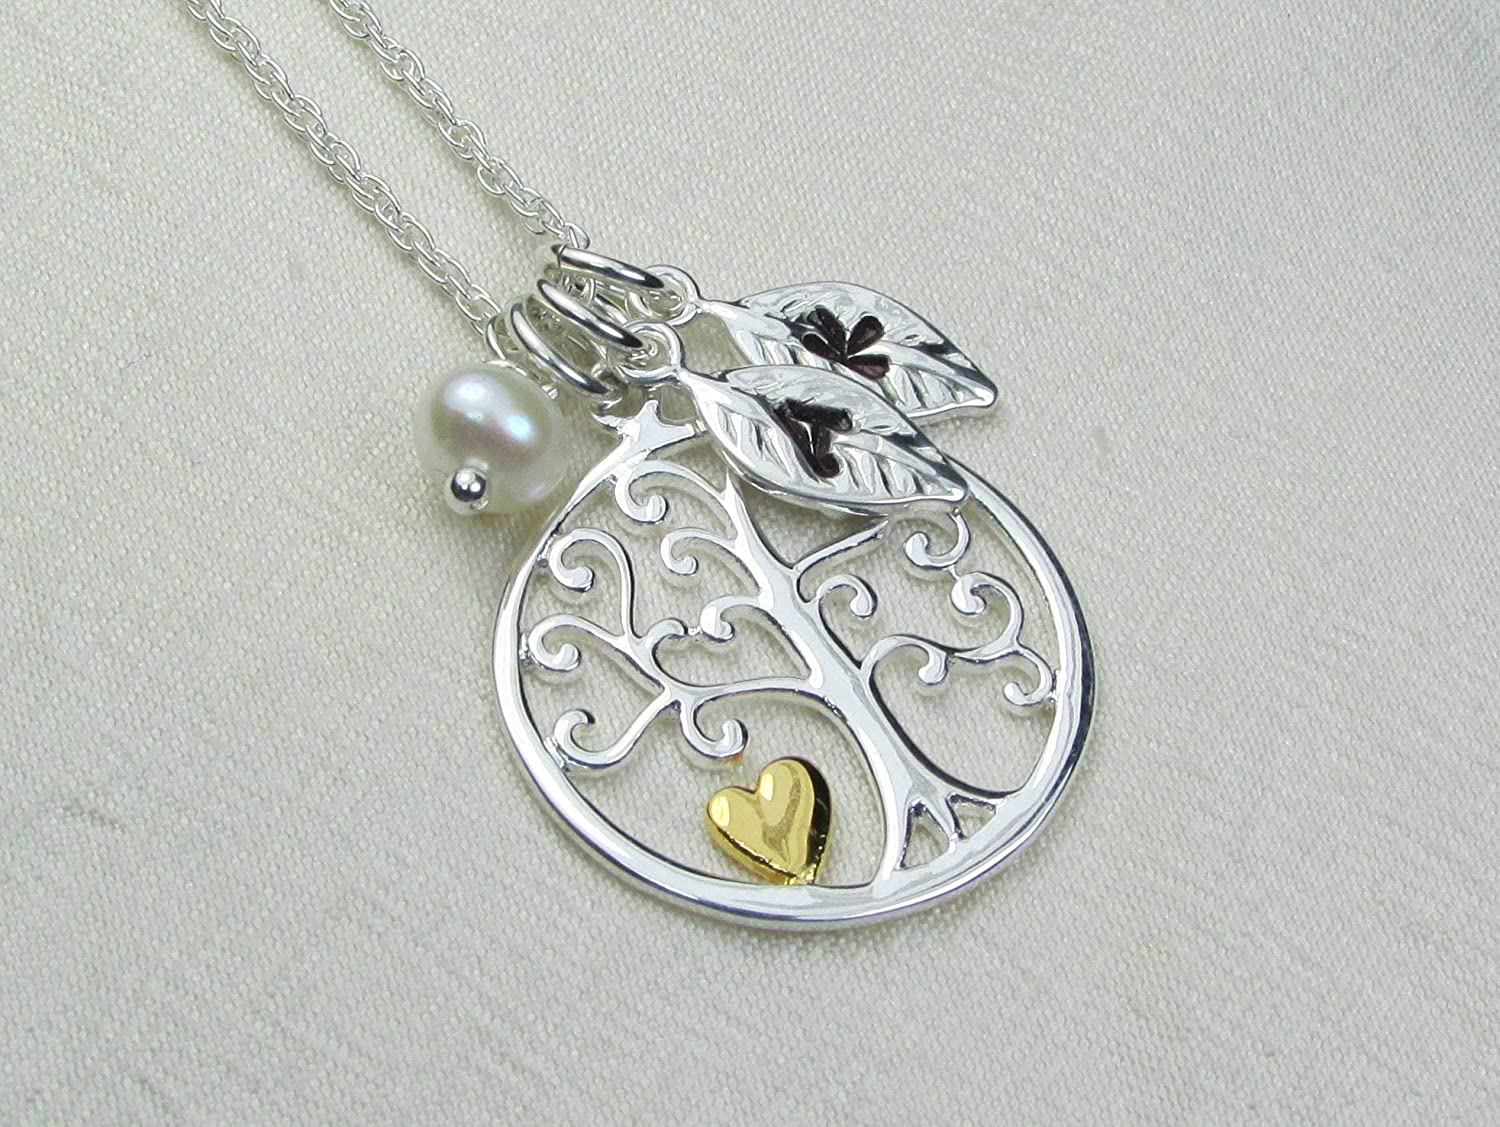 Tree of life Initial Necklace Birthstone Charm With Initial Free Gift Box